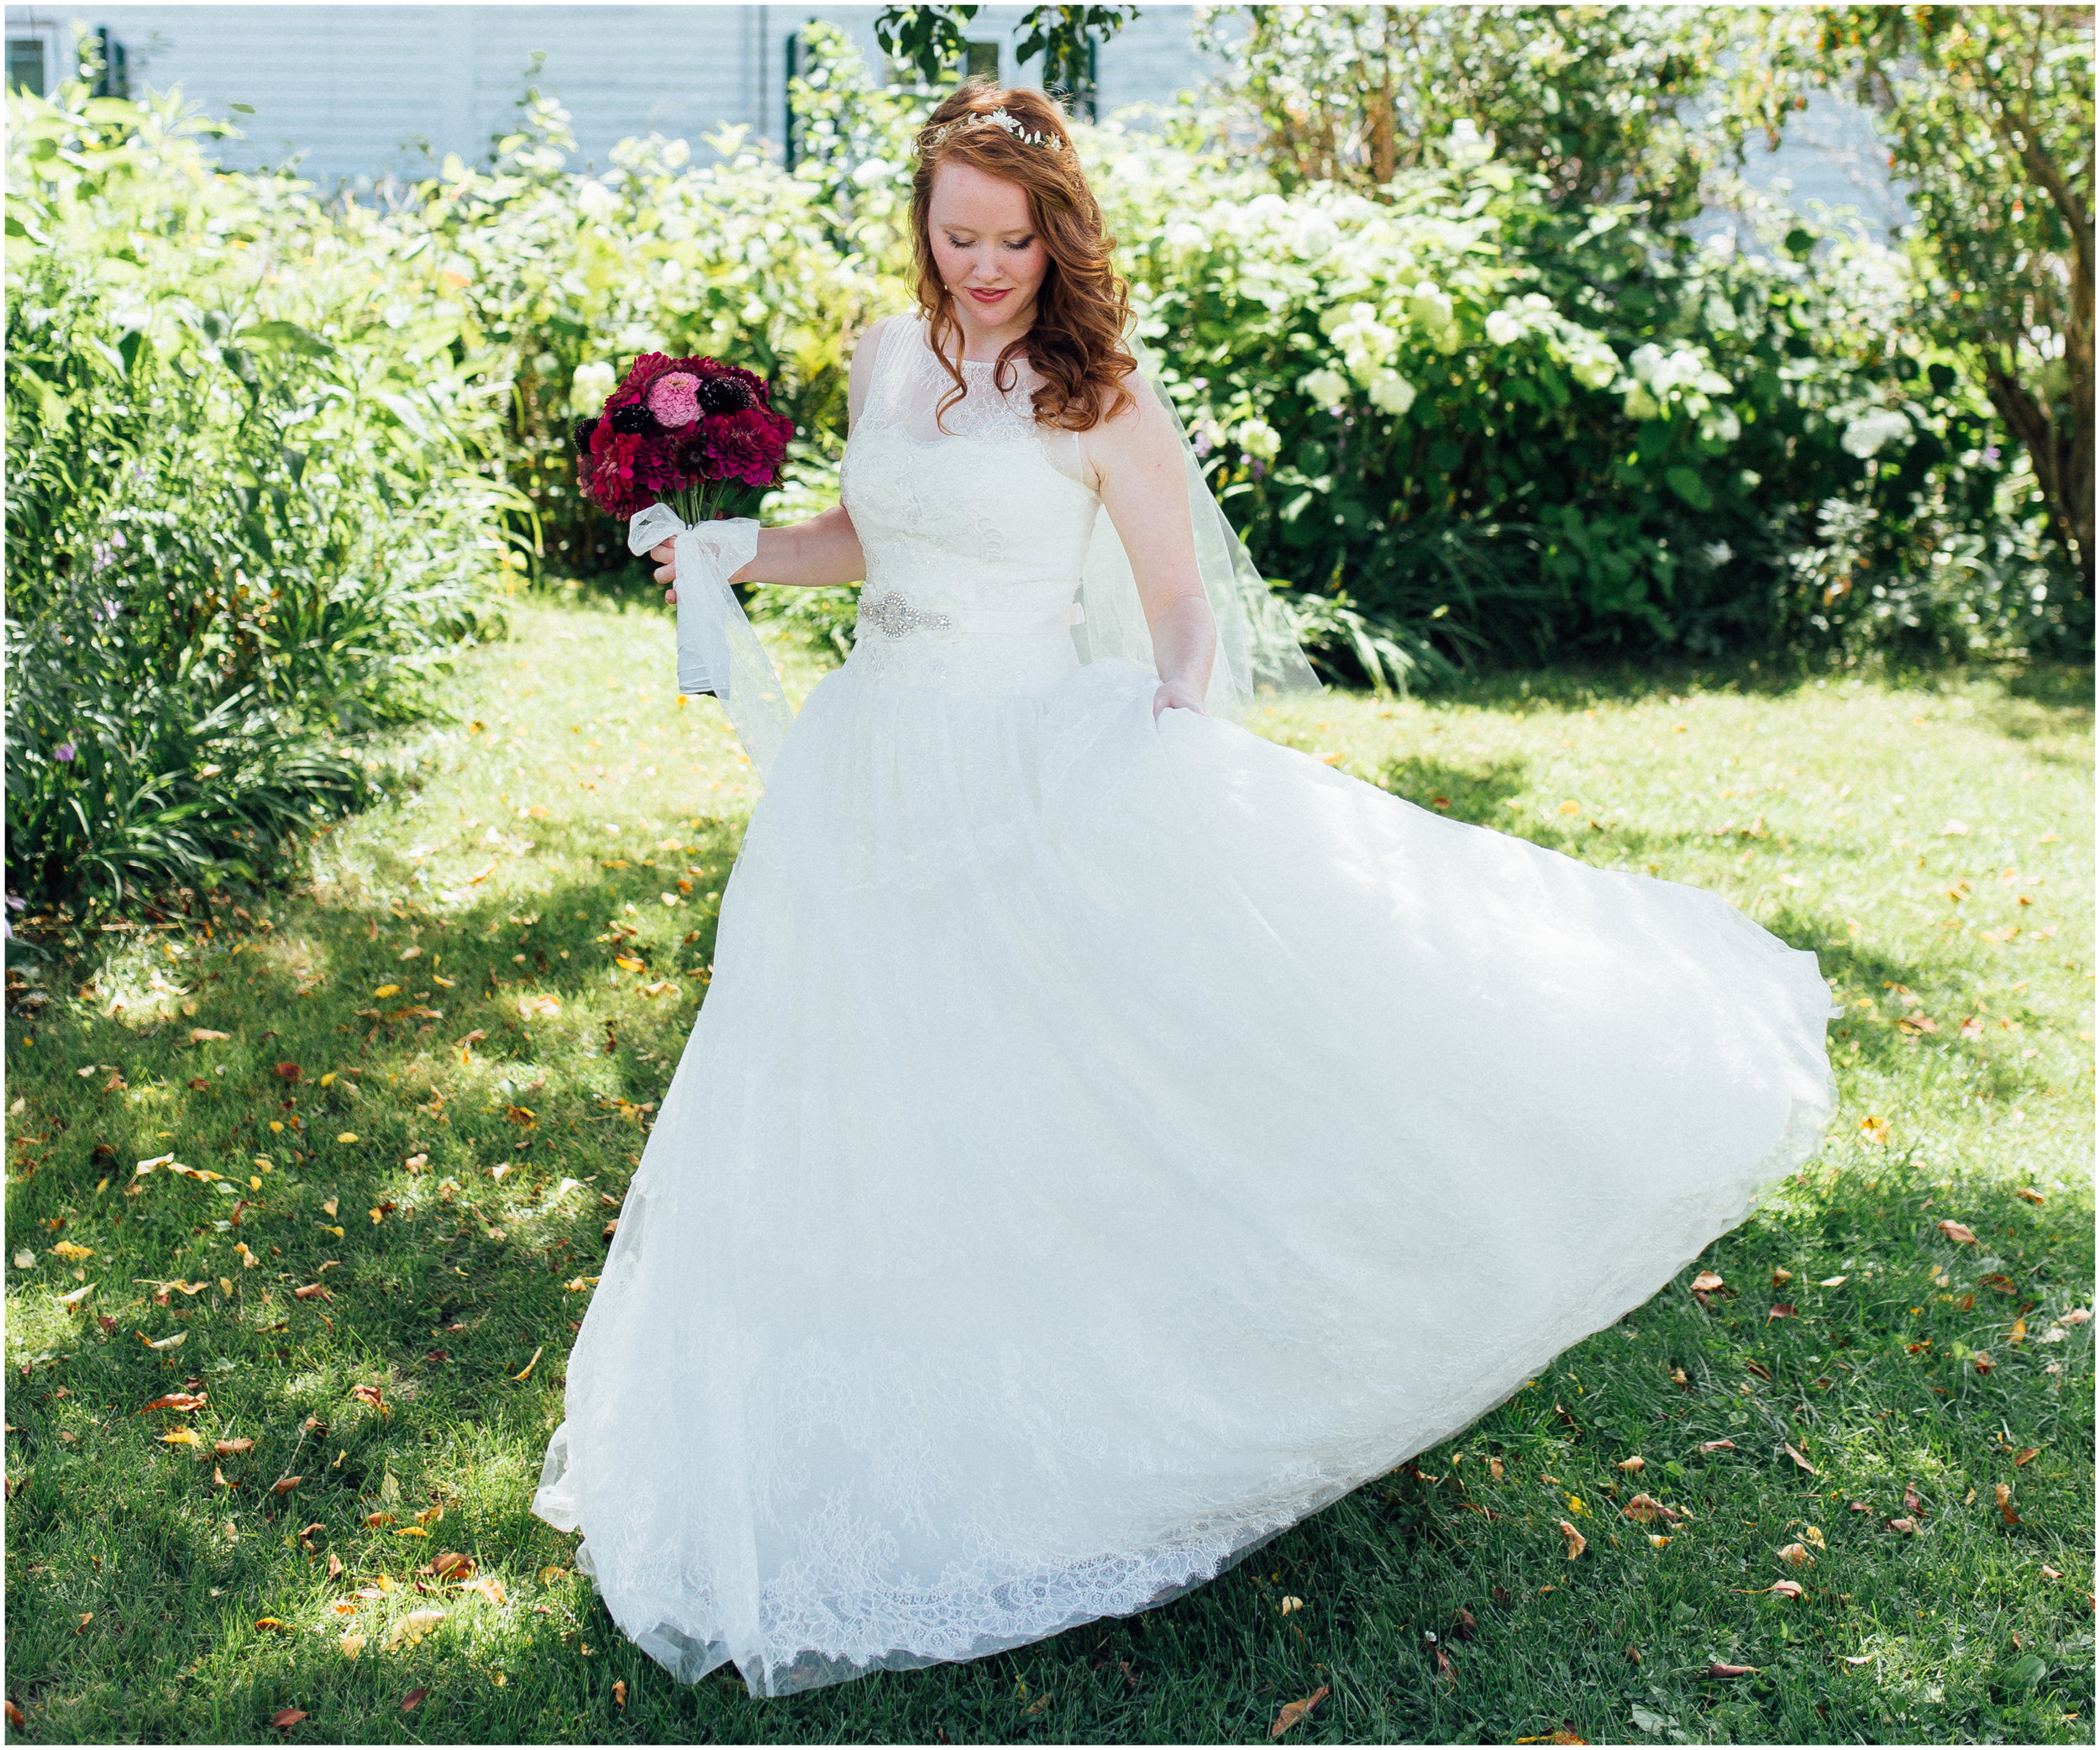 Beautiful bride twirling in her dreamy ballgown wedding dress